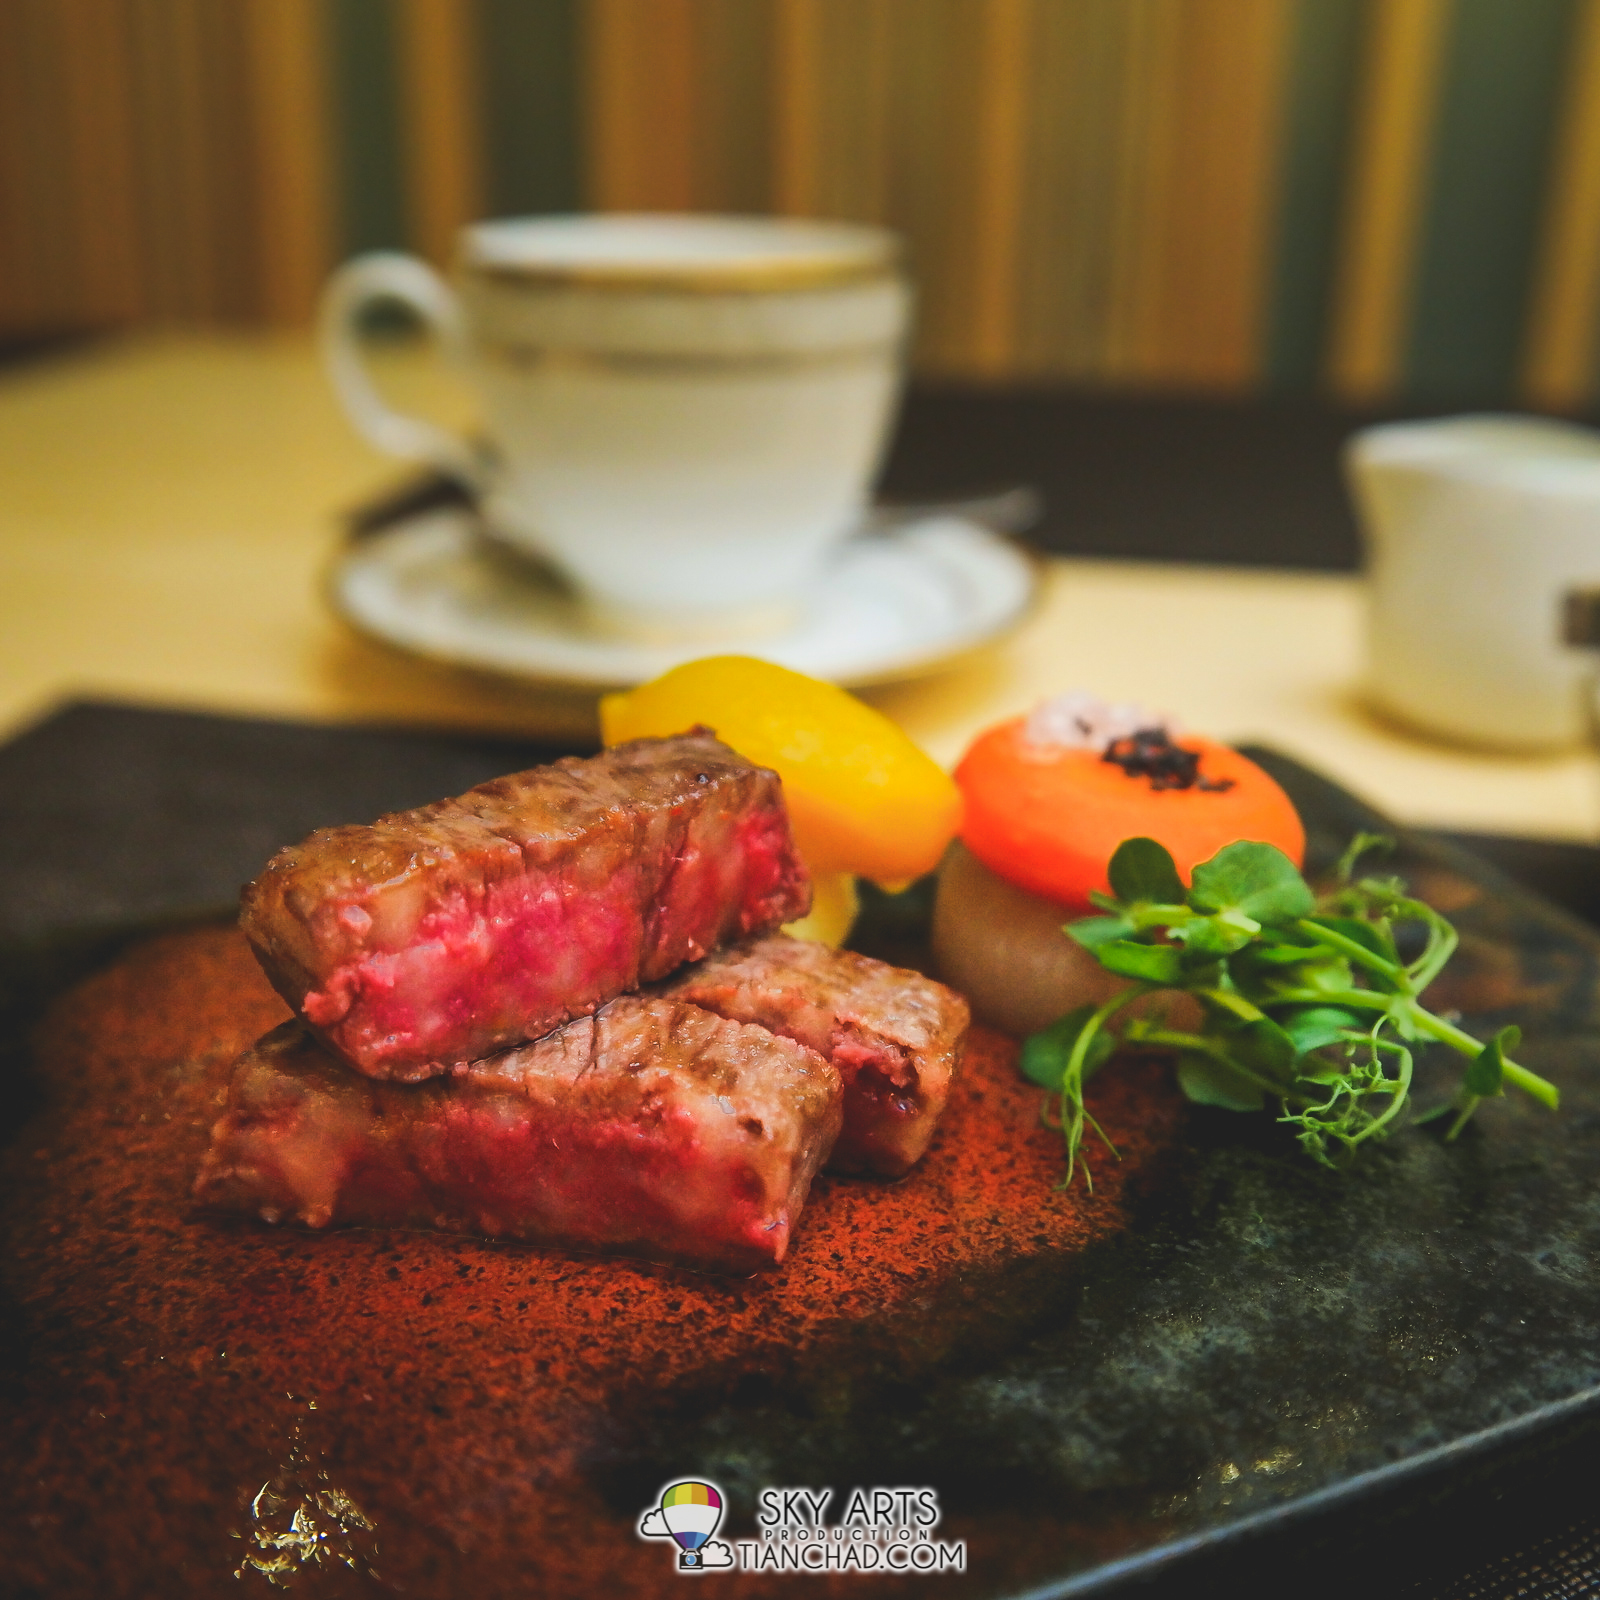 Succulent Akita Wagyu Steak paired with Black and White Sea Salts